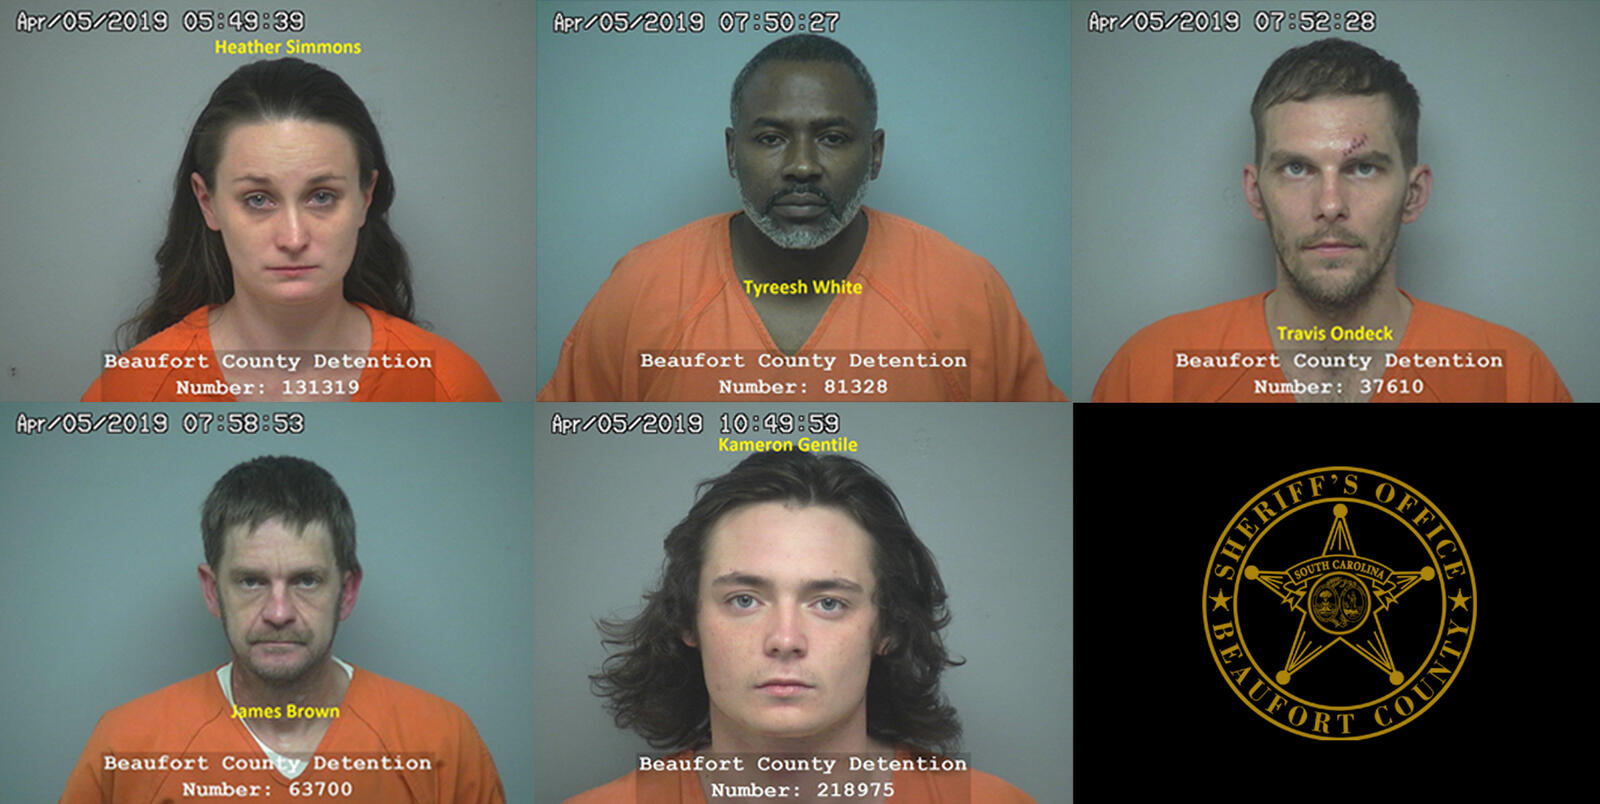 Five arrested for heroin and other illegal drugs following a